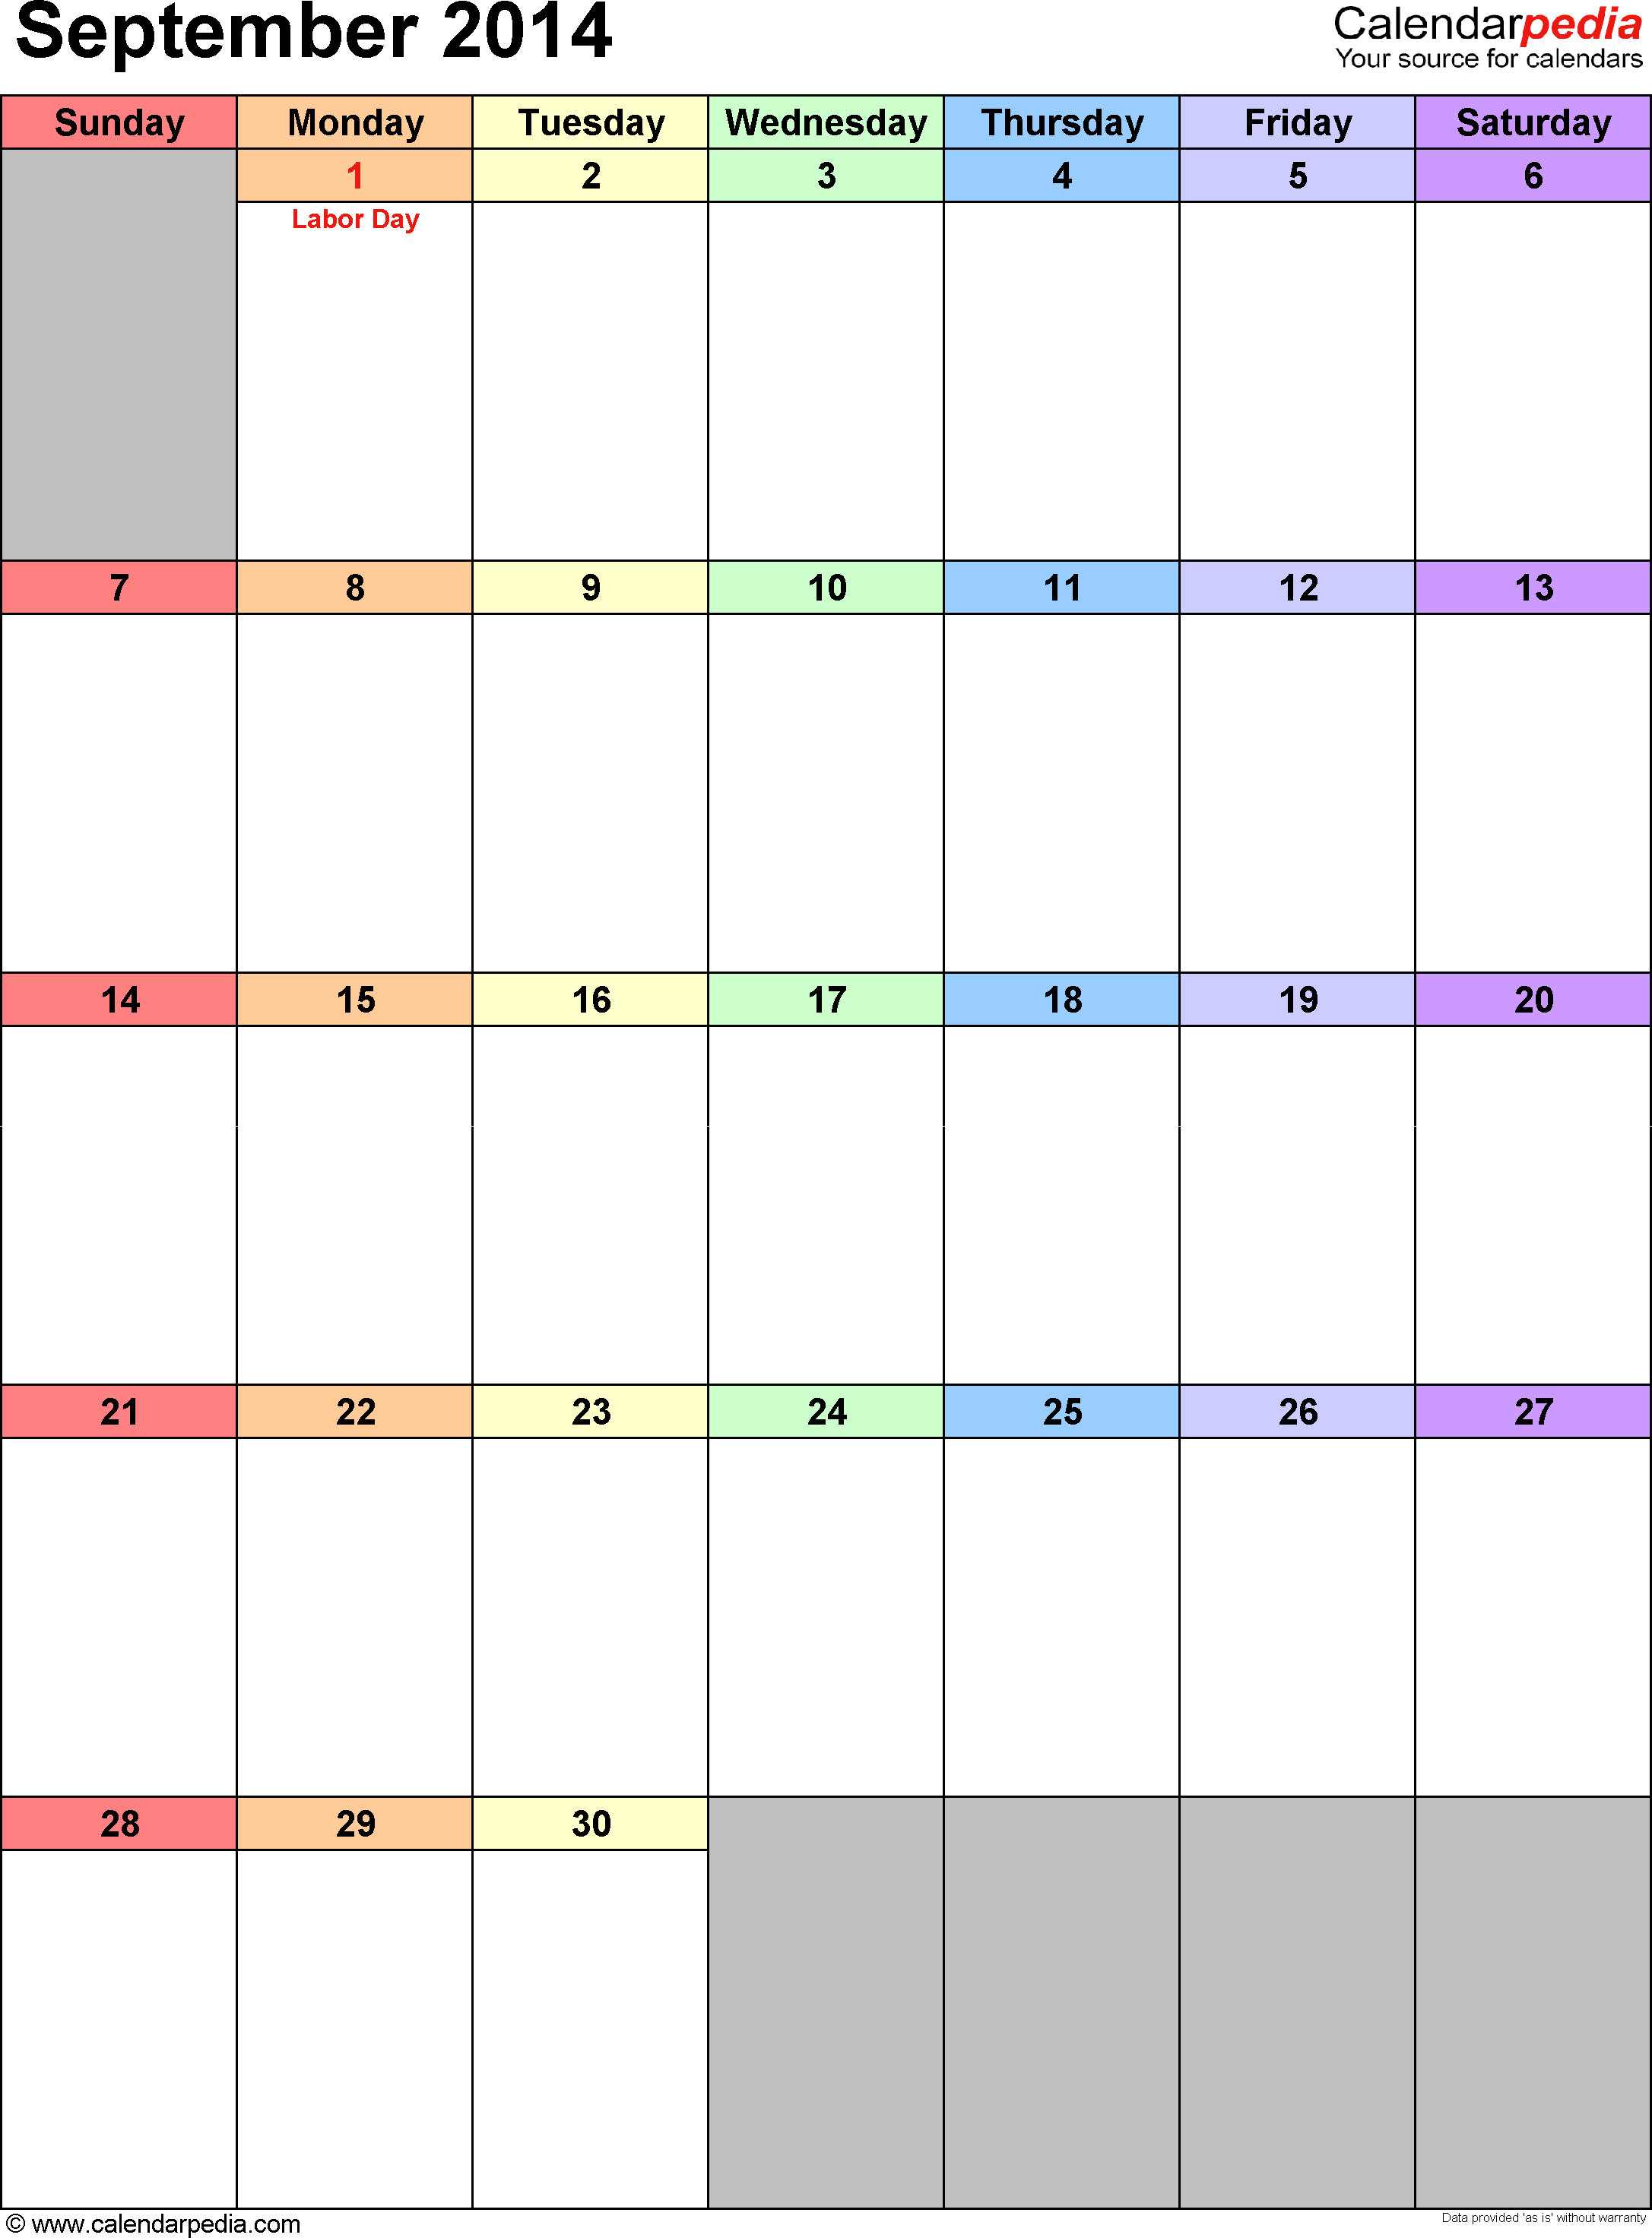 September 2014 calendar as printable Word, Excel & PDF templates